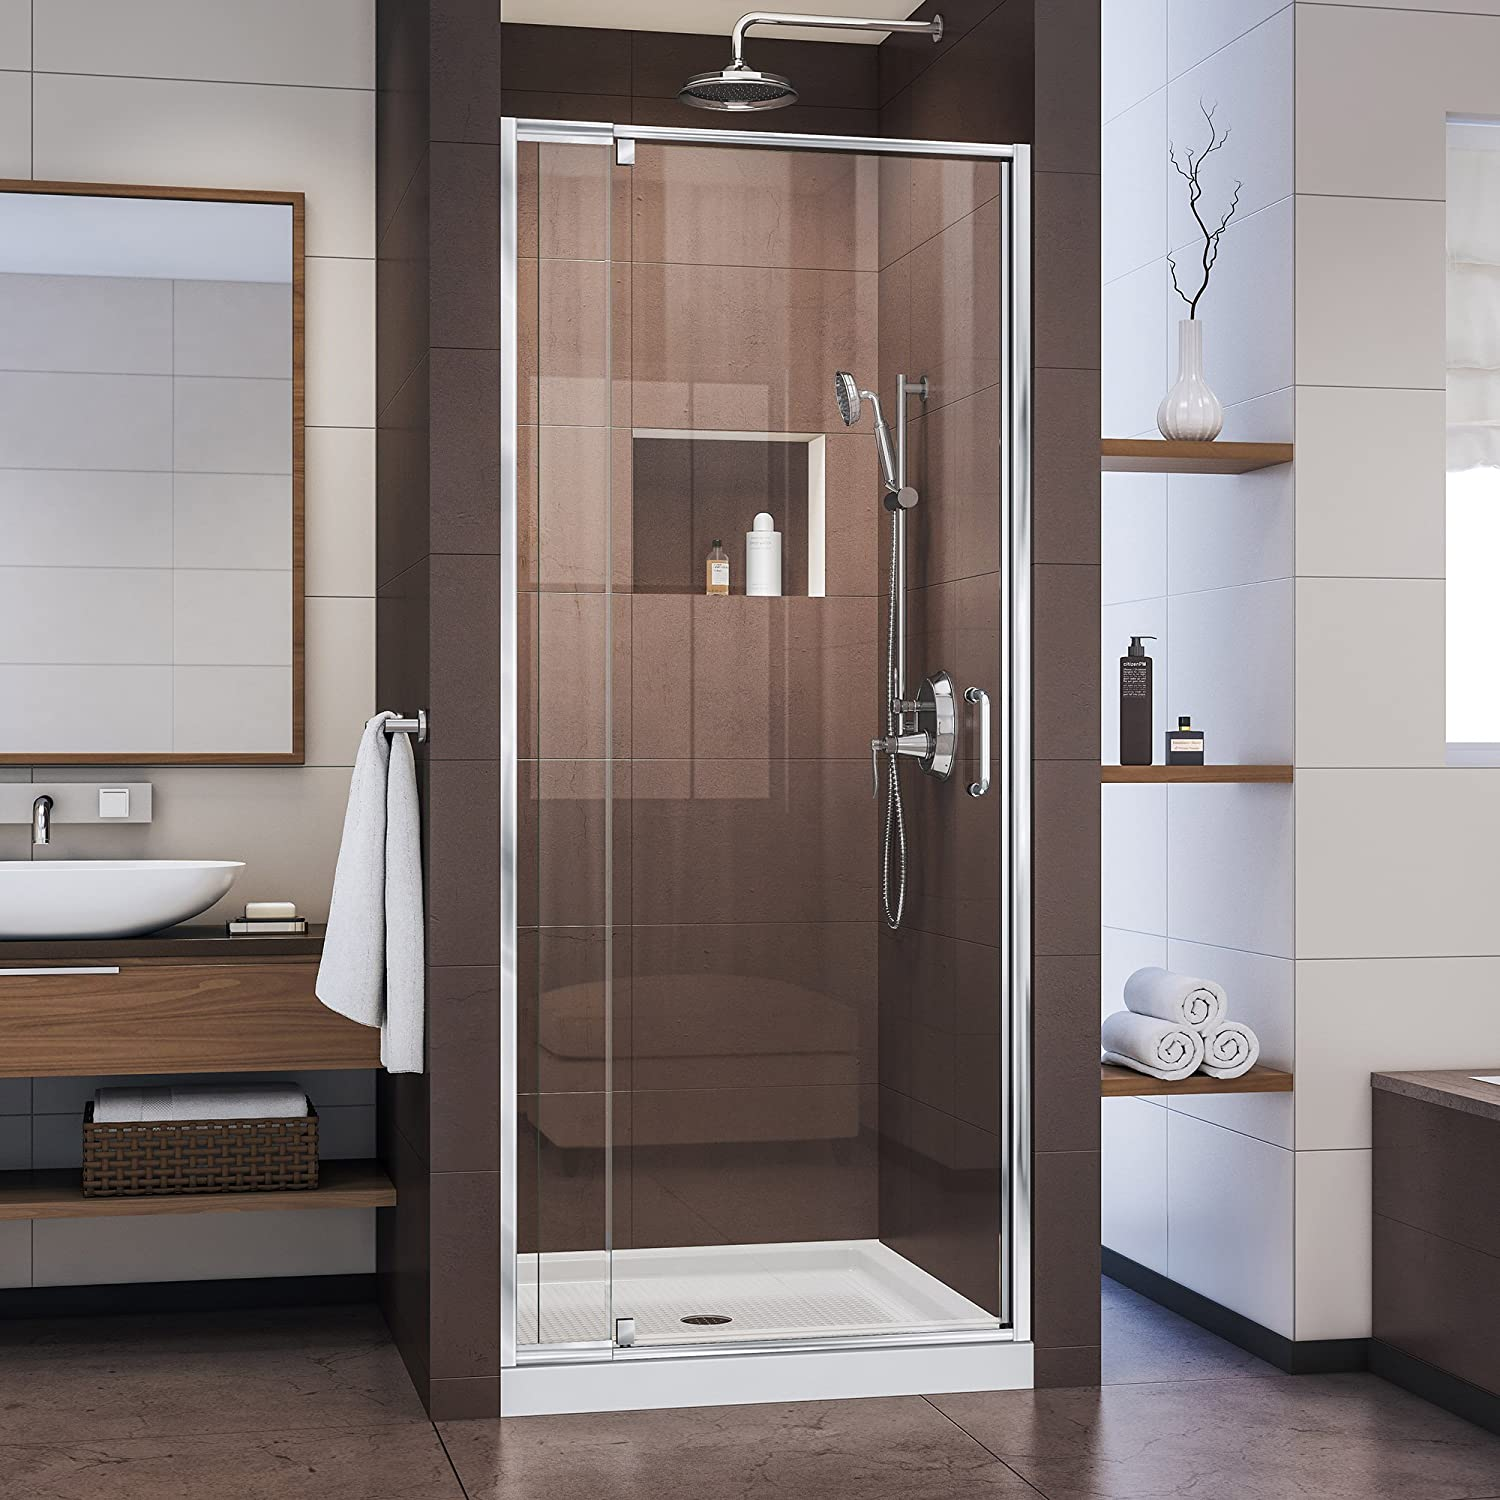 DreamLine Flex 32-36 W x 72 H Inch Semi-Frameless Pivot Shower Door, Chrome